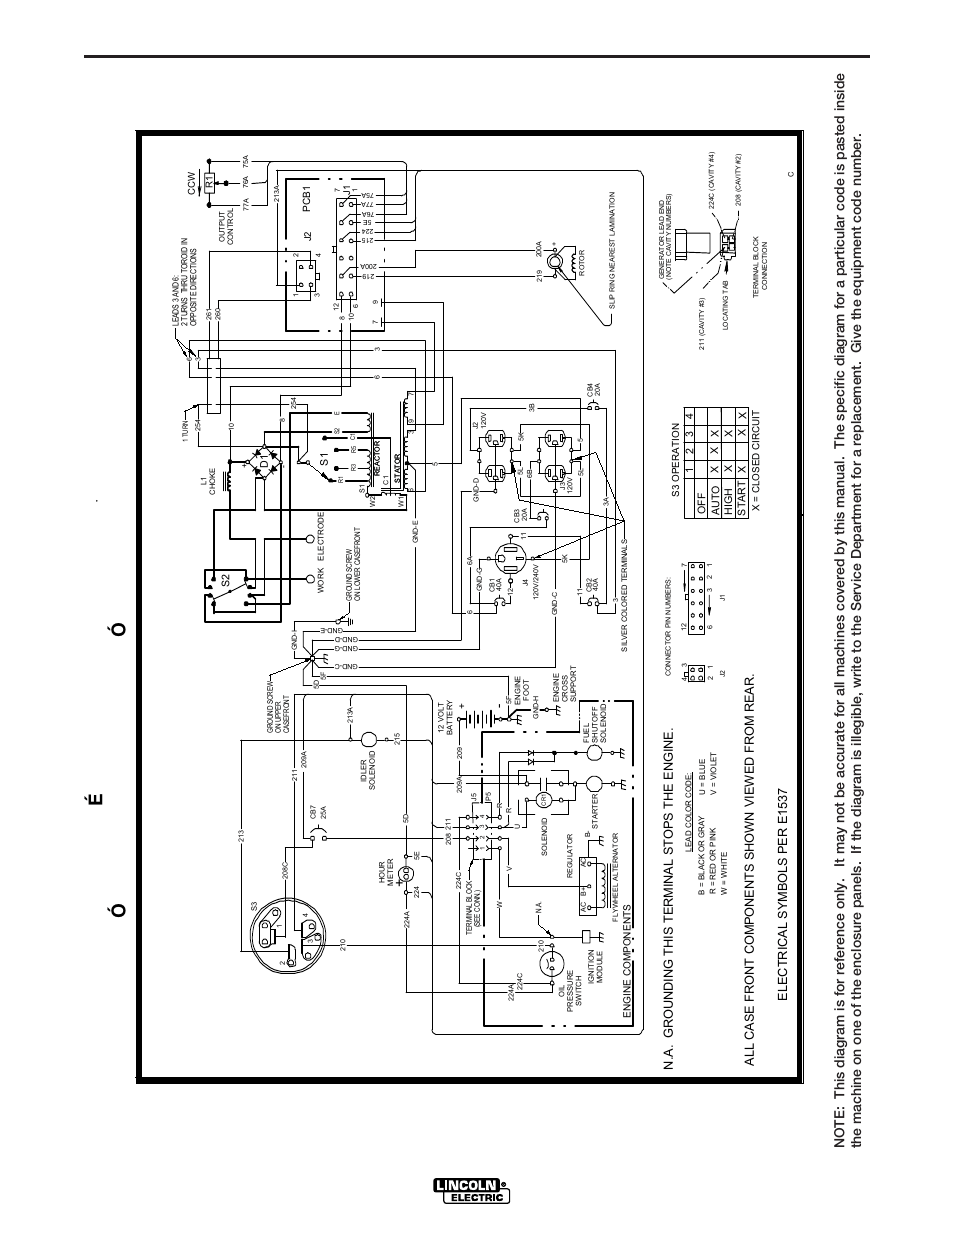 94 Ford Ranger Tps Wiring Free Download Wiring Diagram Schematic